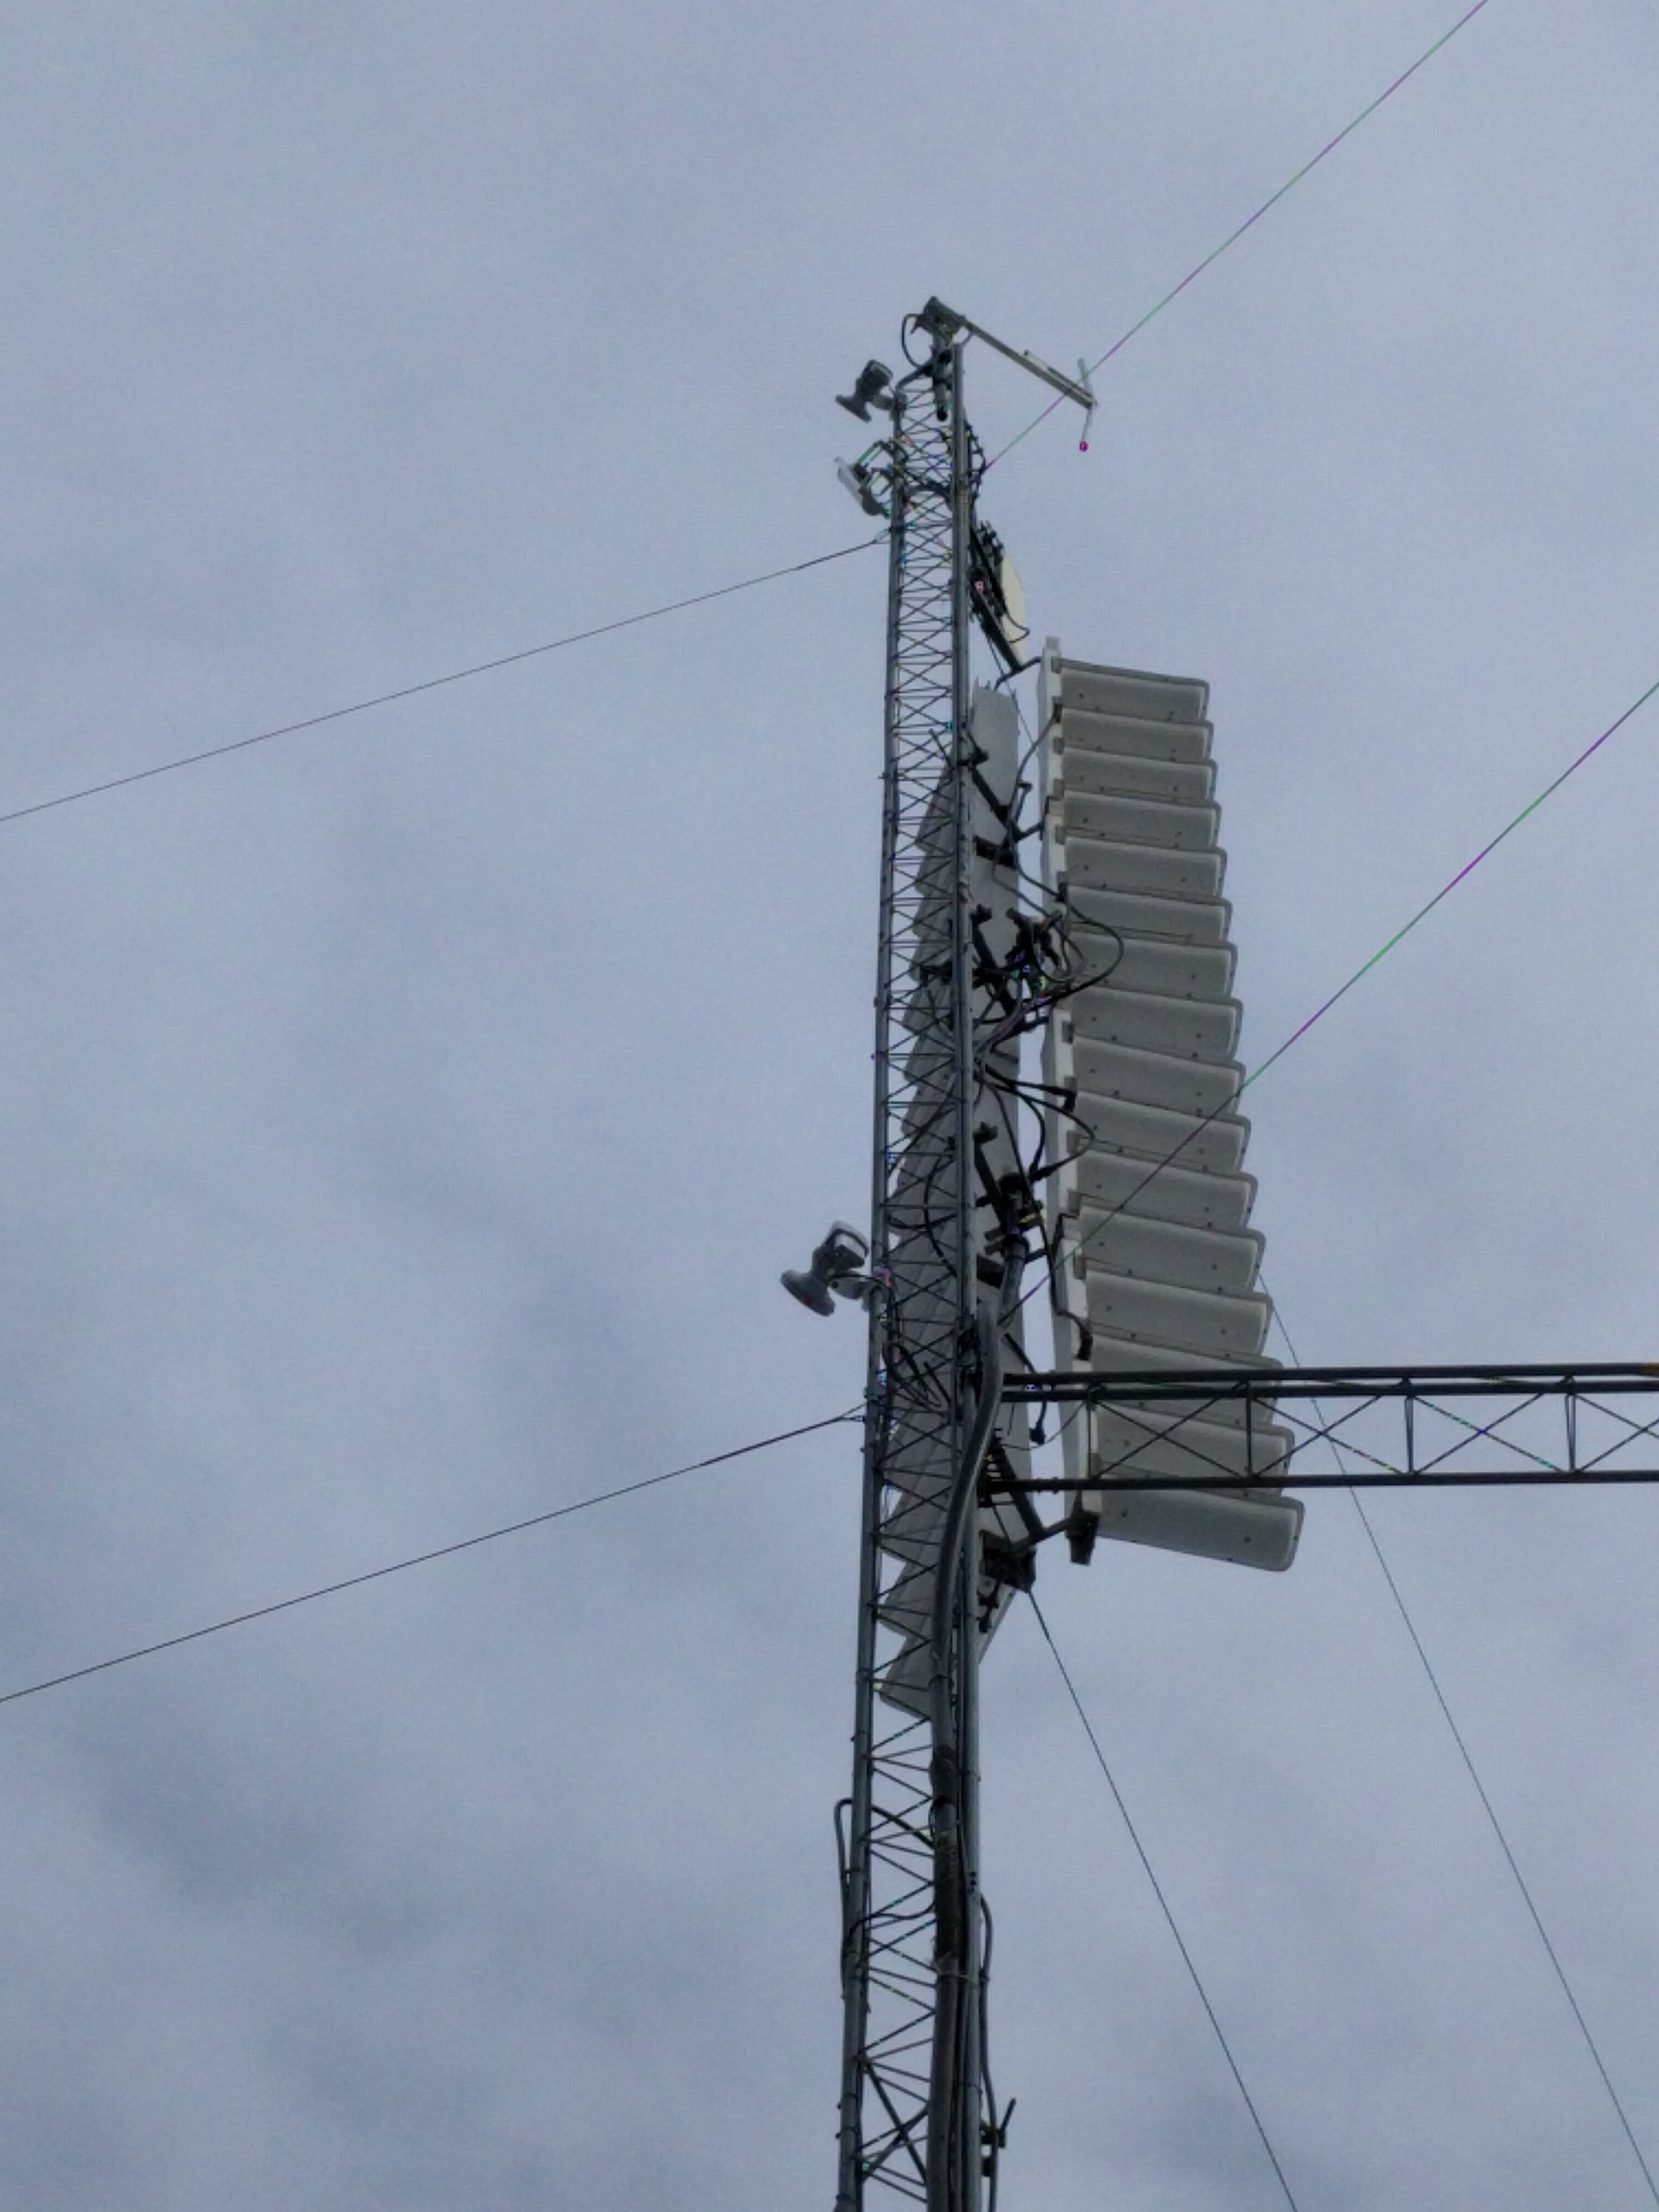 Our radios at the top of this tower.